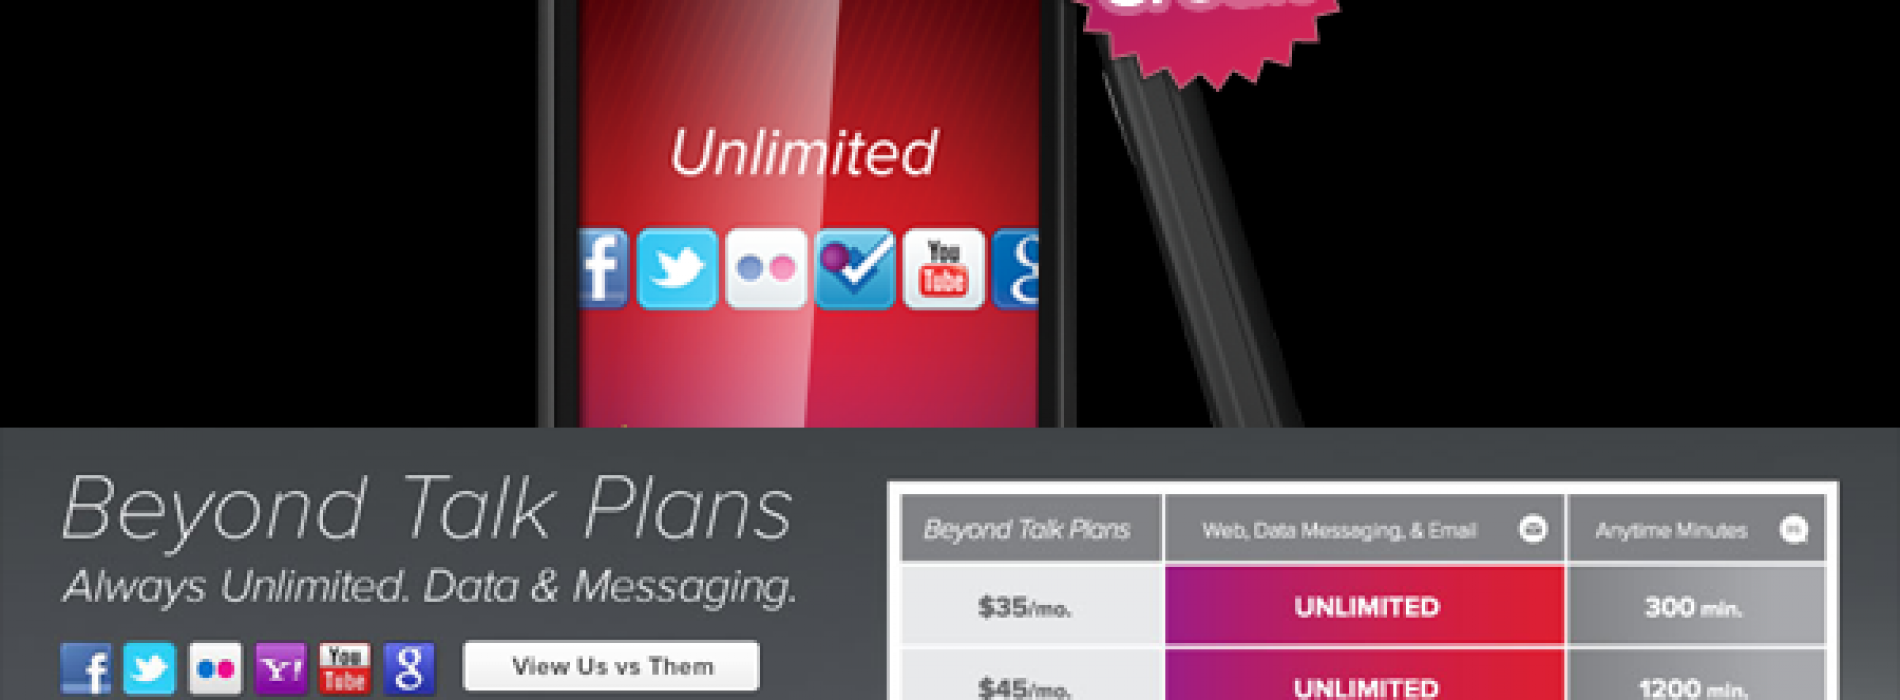 Virgin Mobile to implement 'data speed reduction' (throttling) on March 23